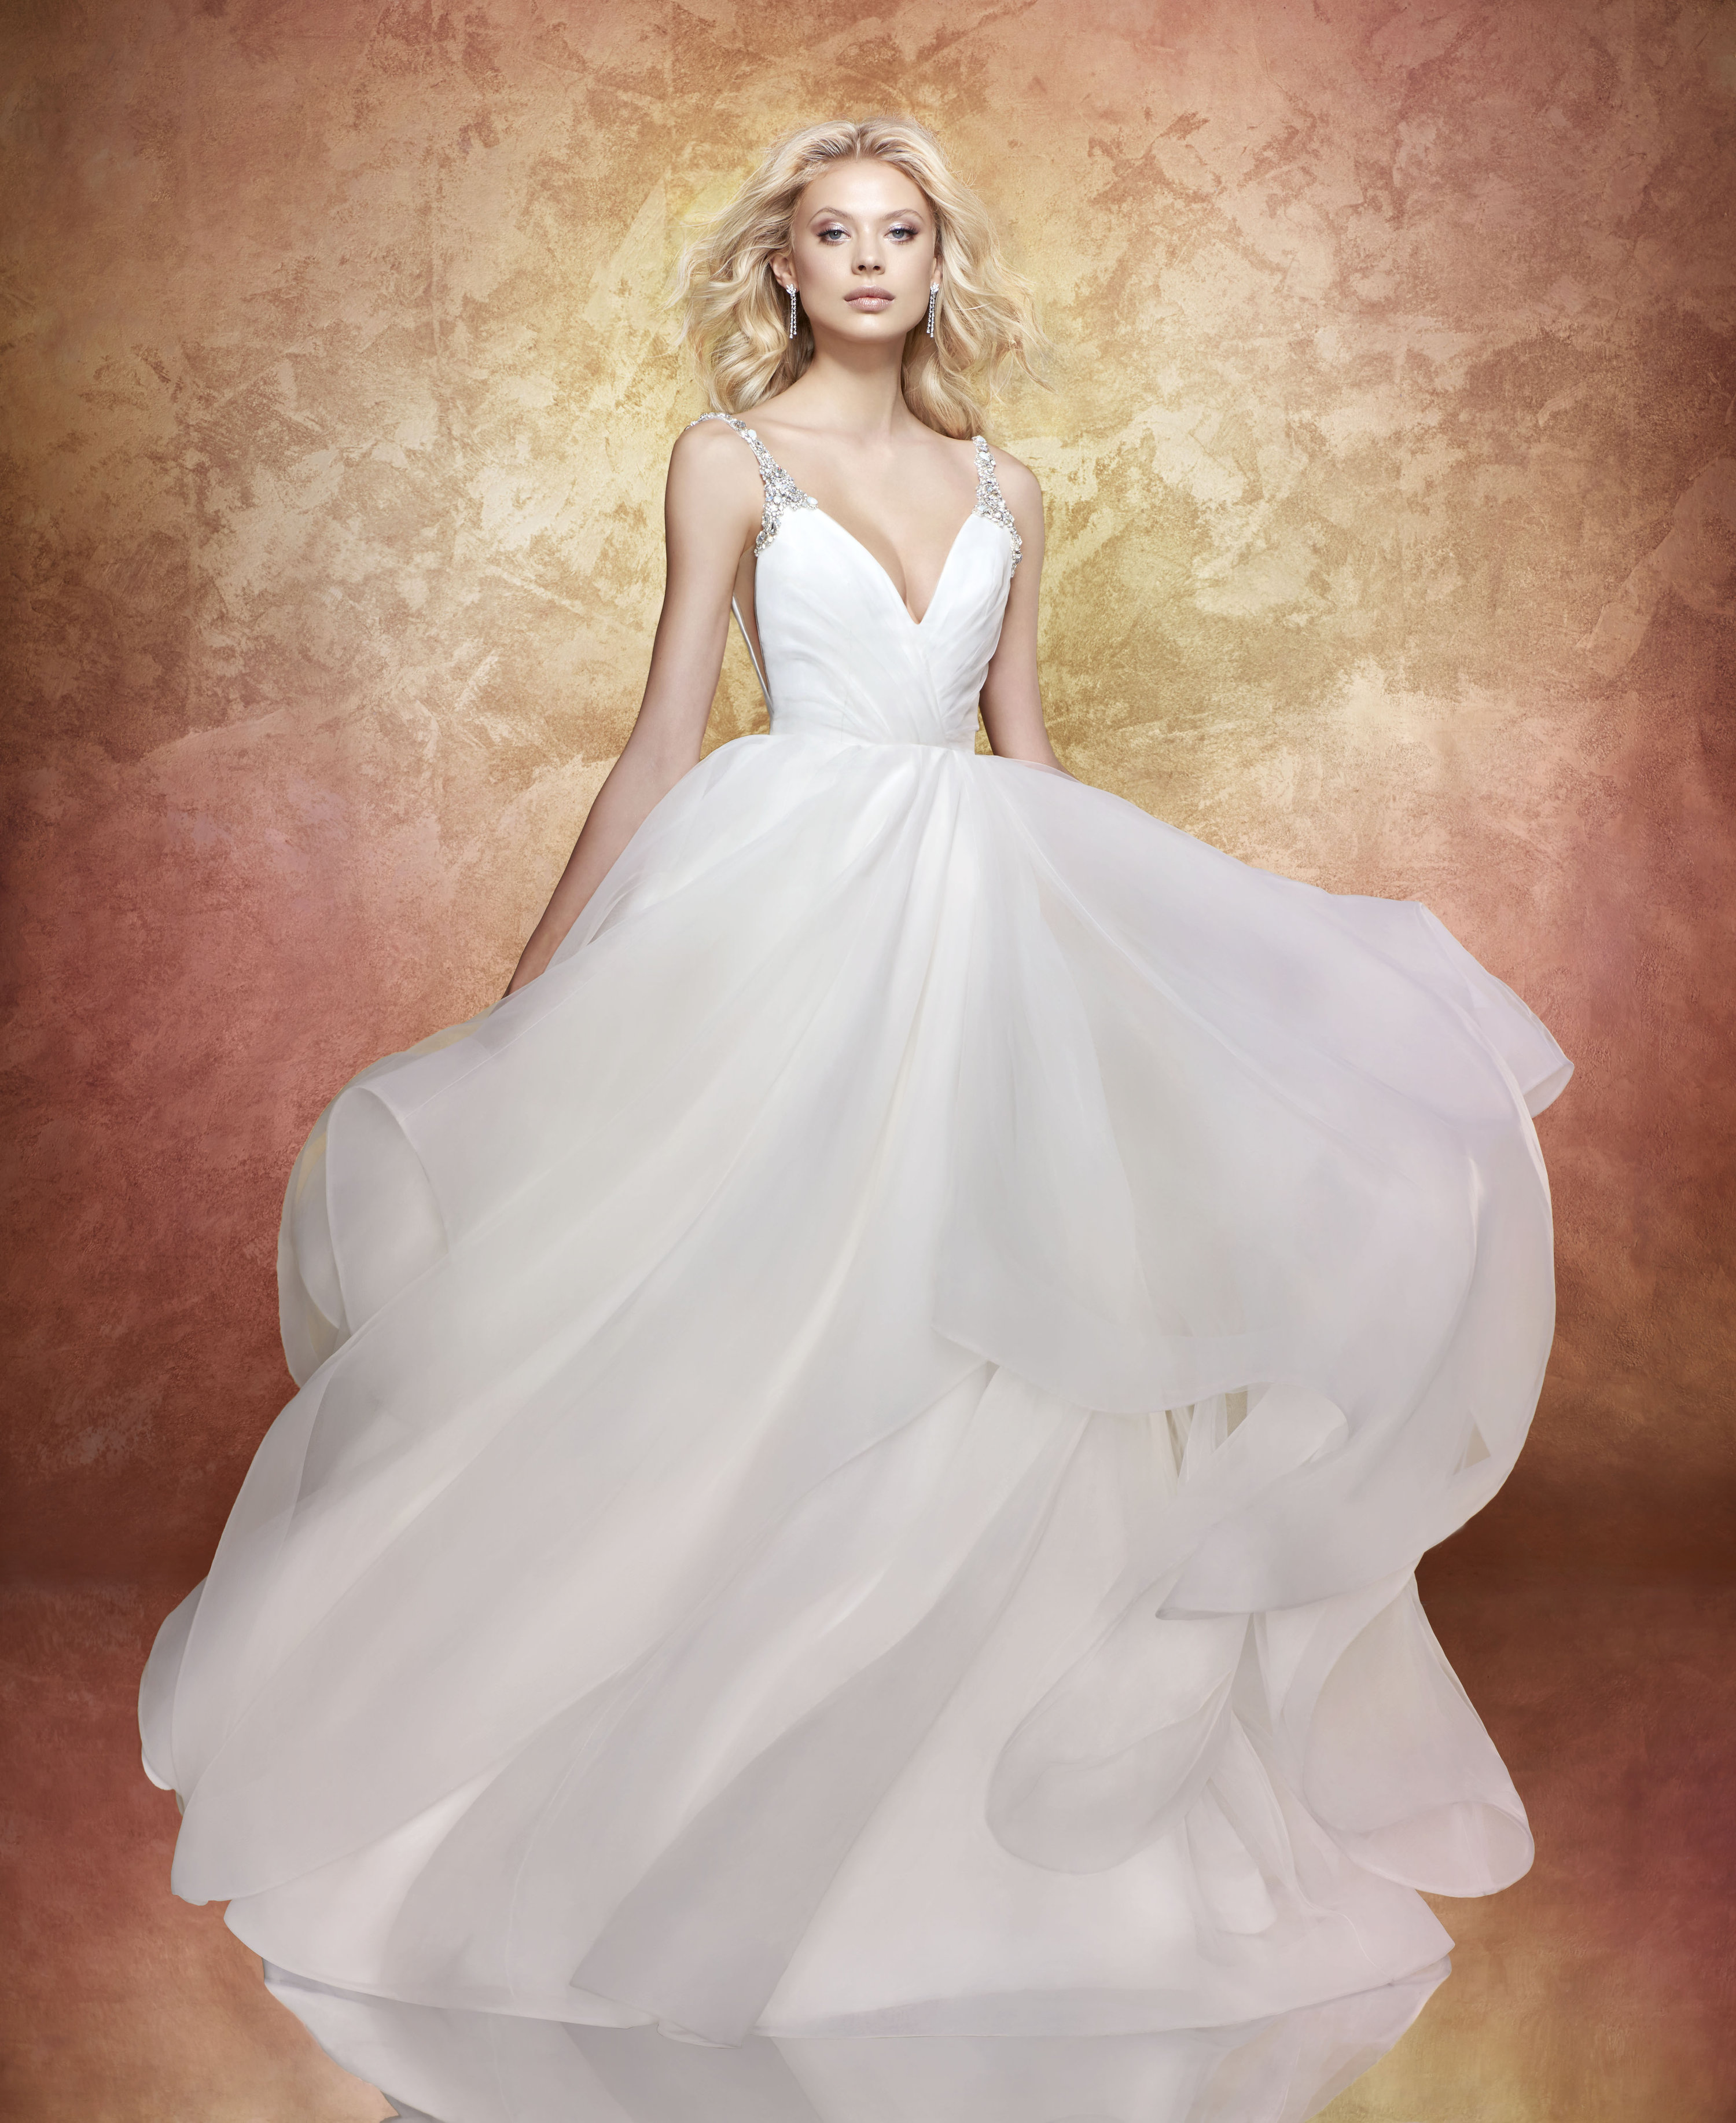 Bridal Gowns and Wedding Dresses by JLM Couture - Style 6704 Dare